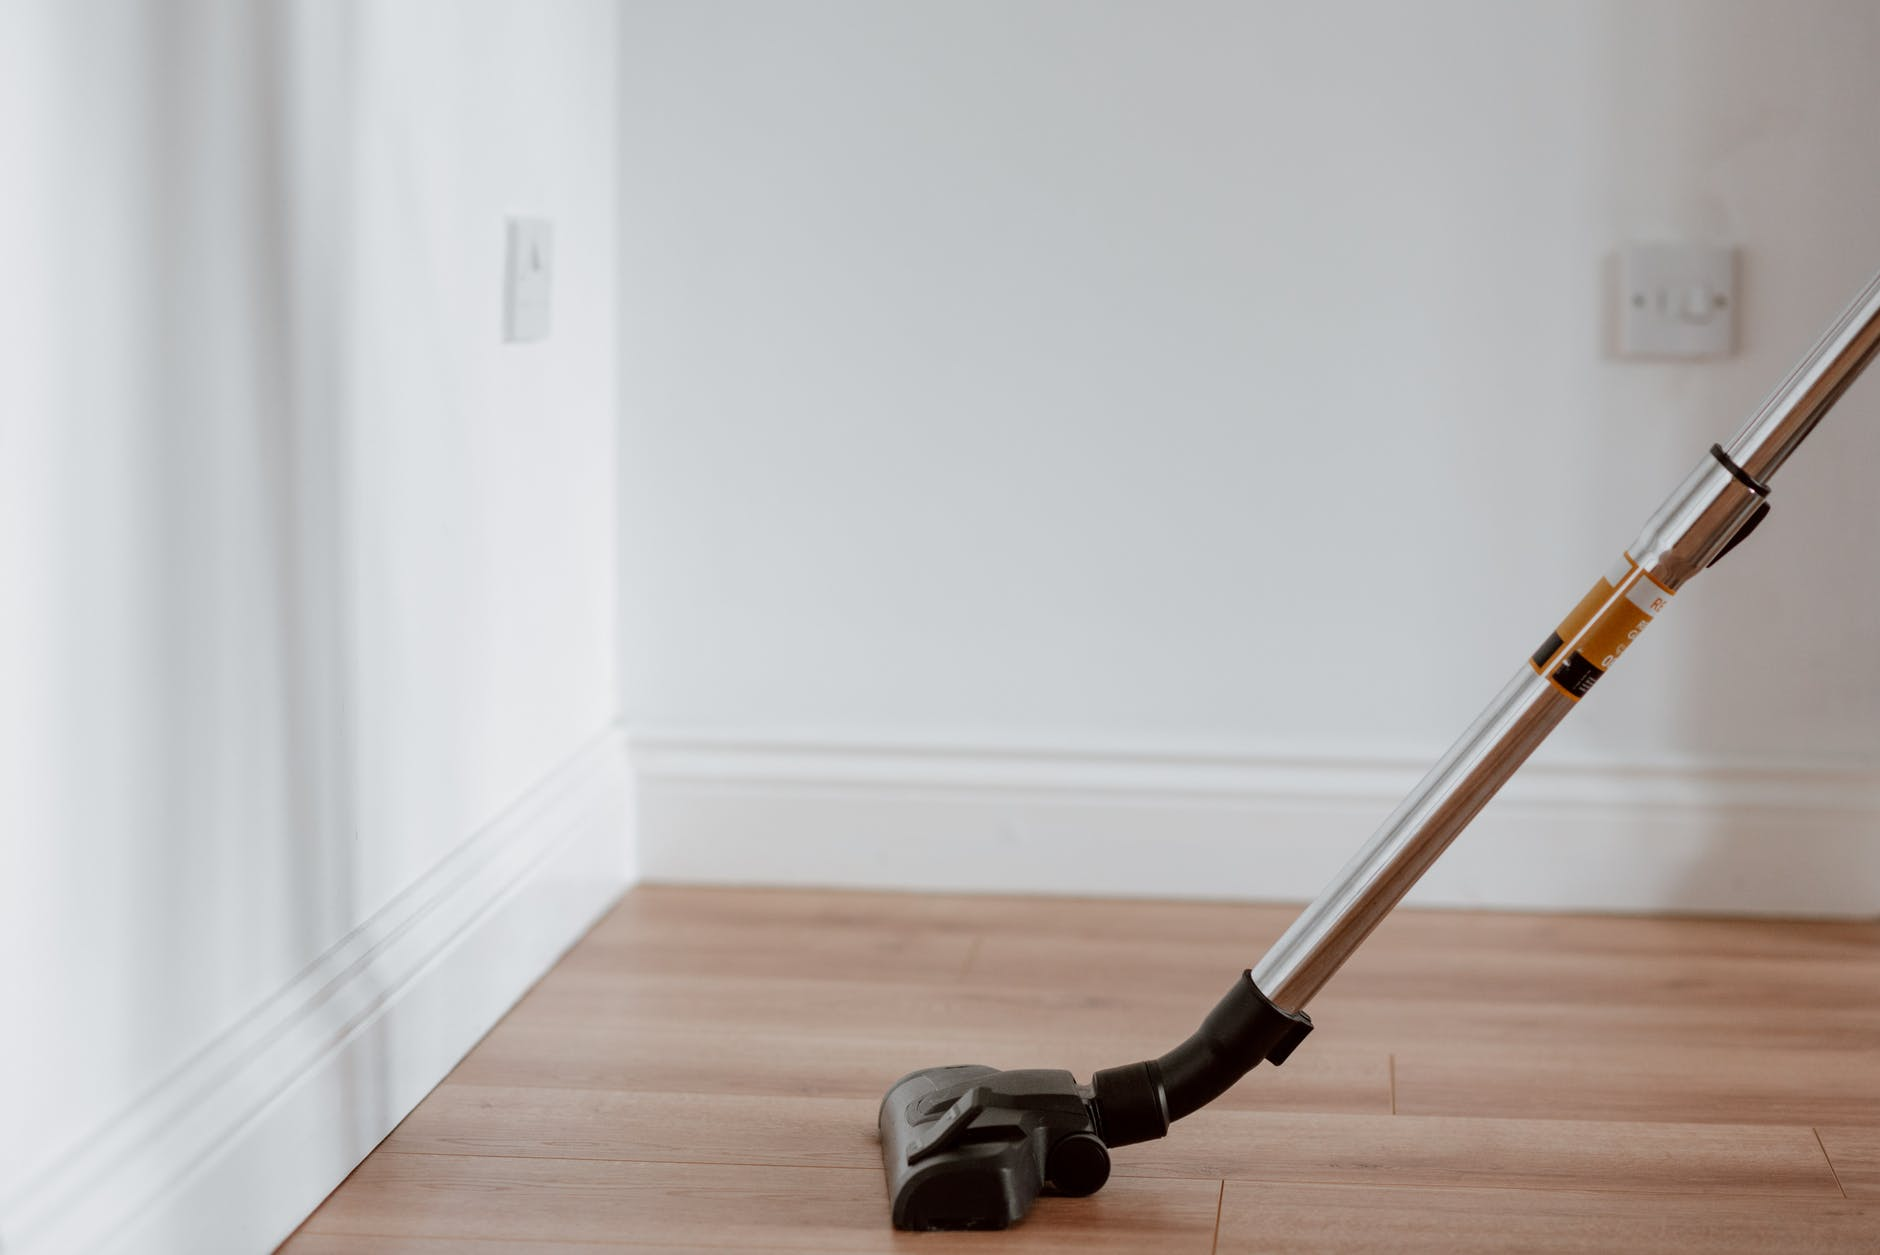 A vacuum cleaner, used as a metaphor for things sucking.